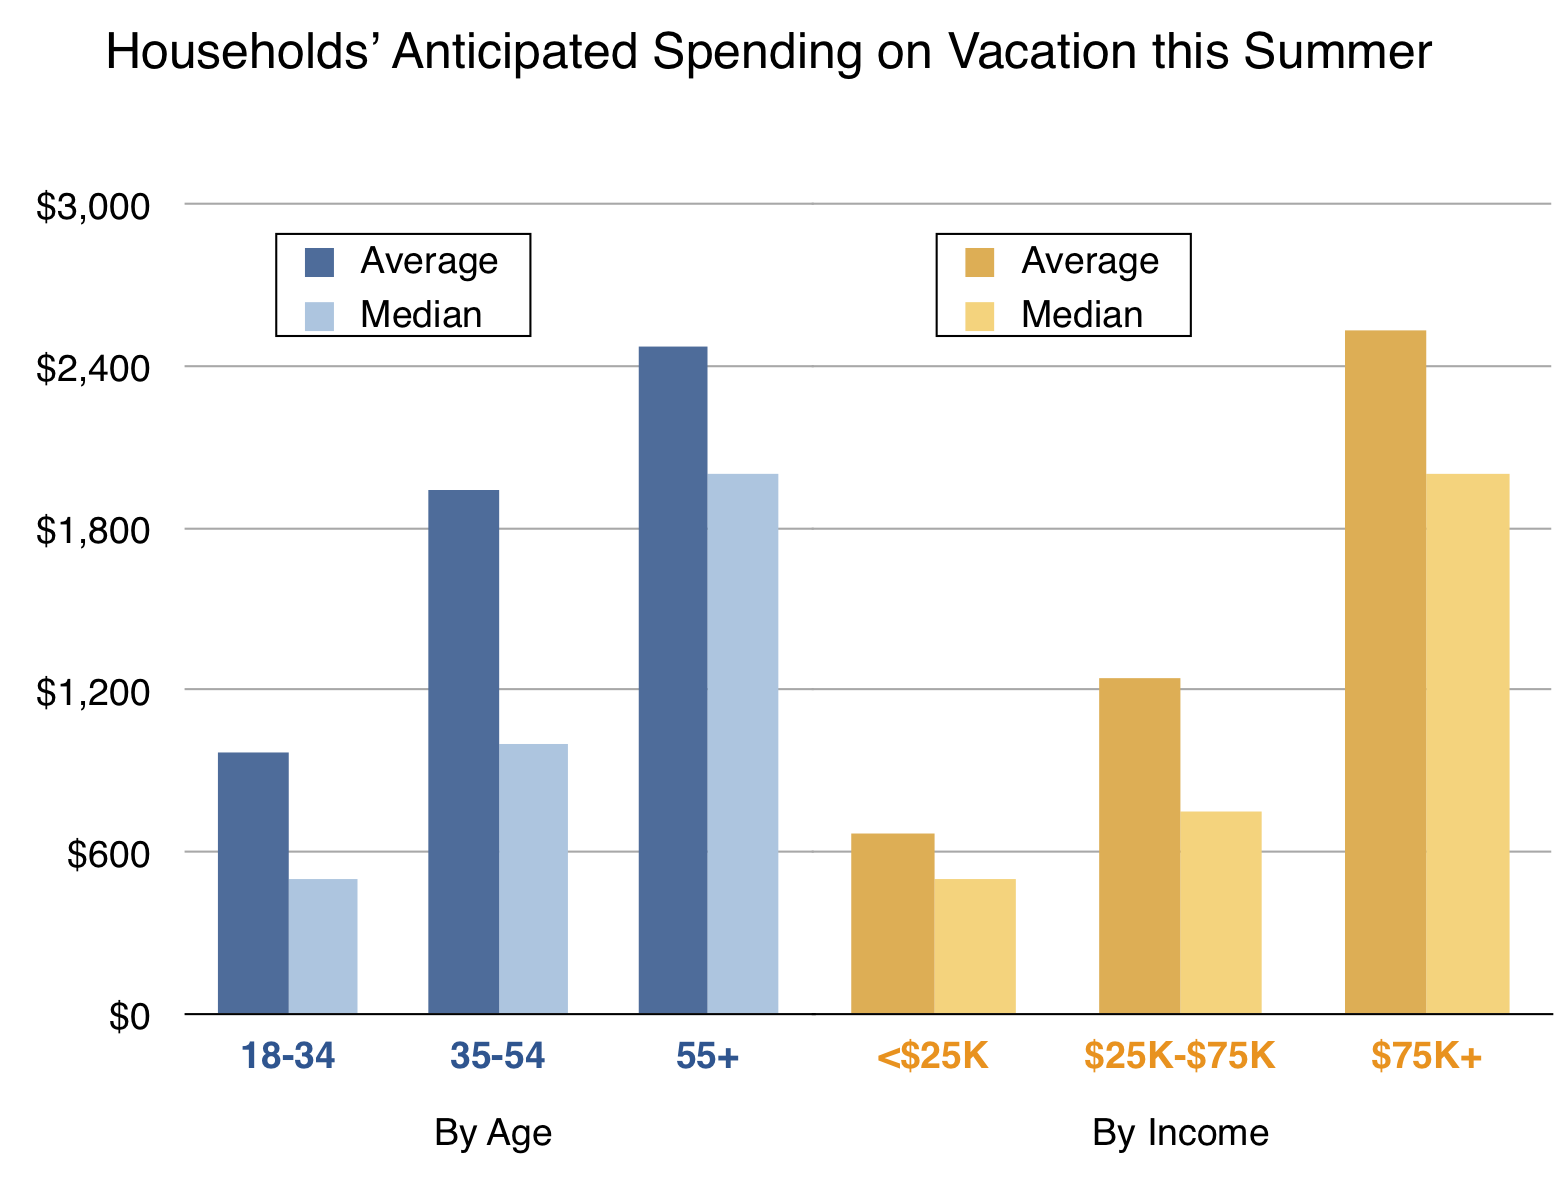 Household spending on vacation